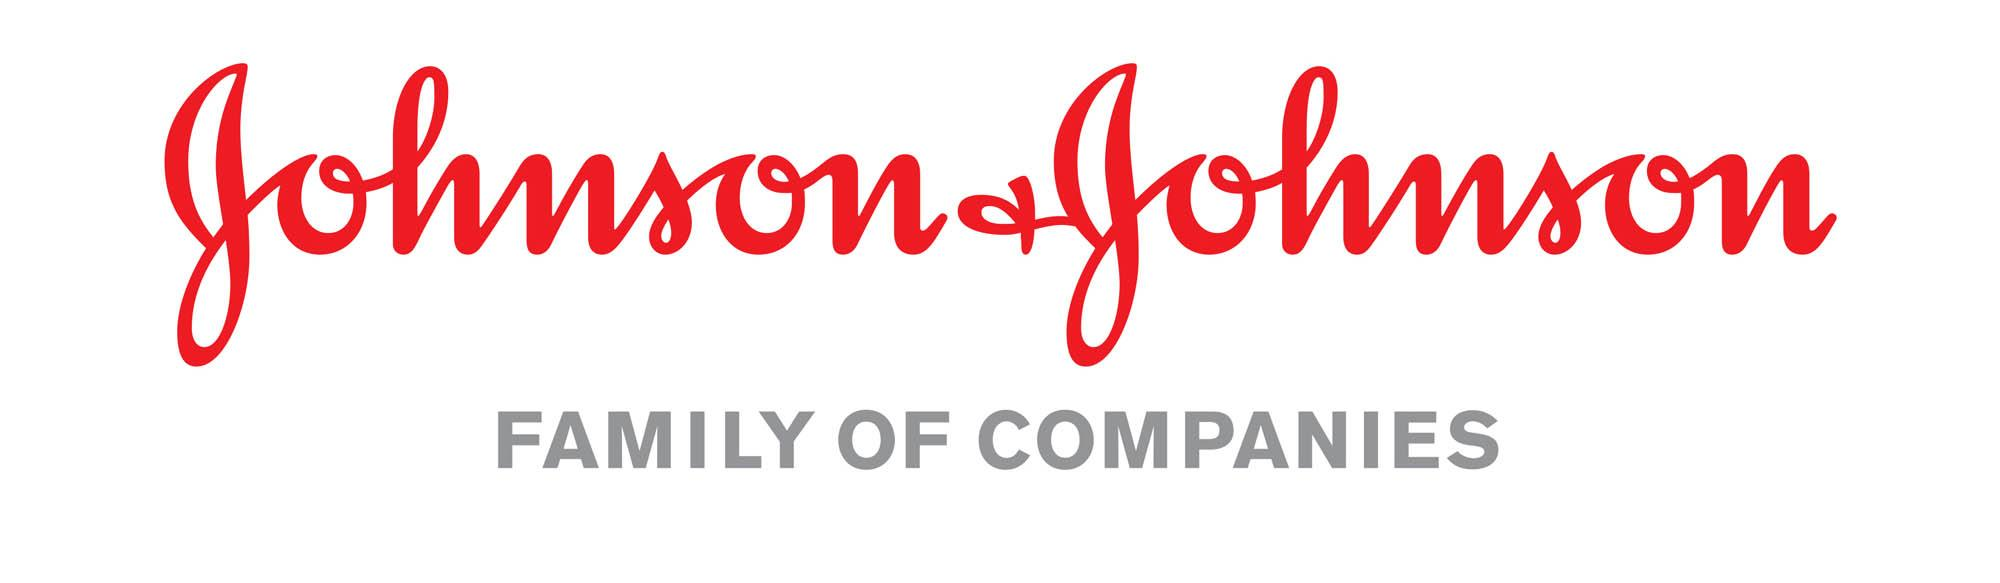 information about johnson and johnson company 1,701 reviews from johnson & johnson employees about johnson & johnson culture, salaries, benefits, work-life balance, management, job security, and more.